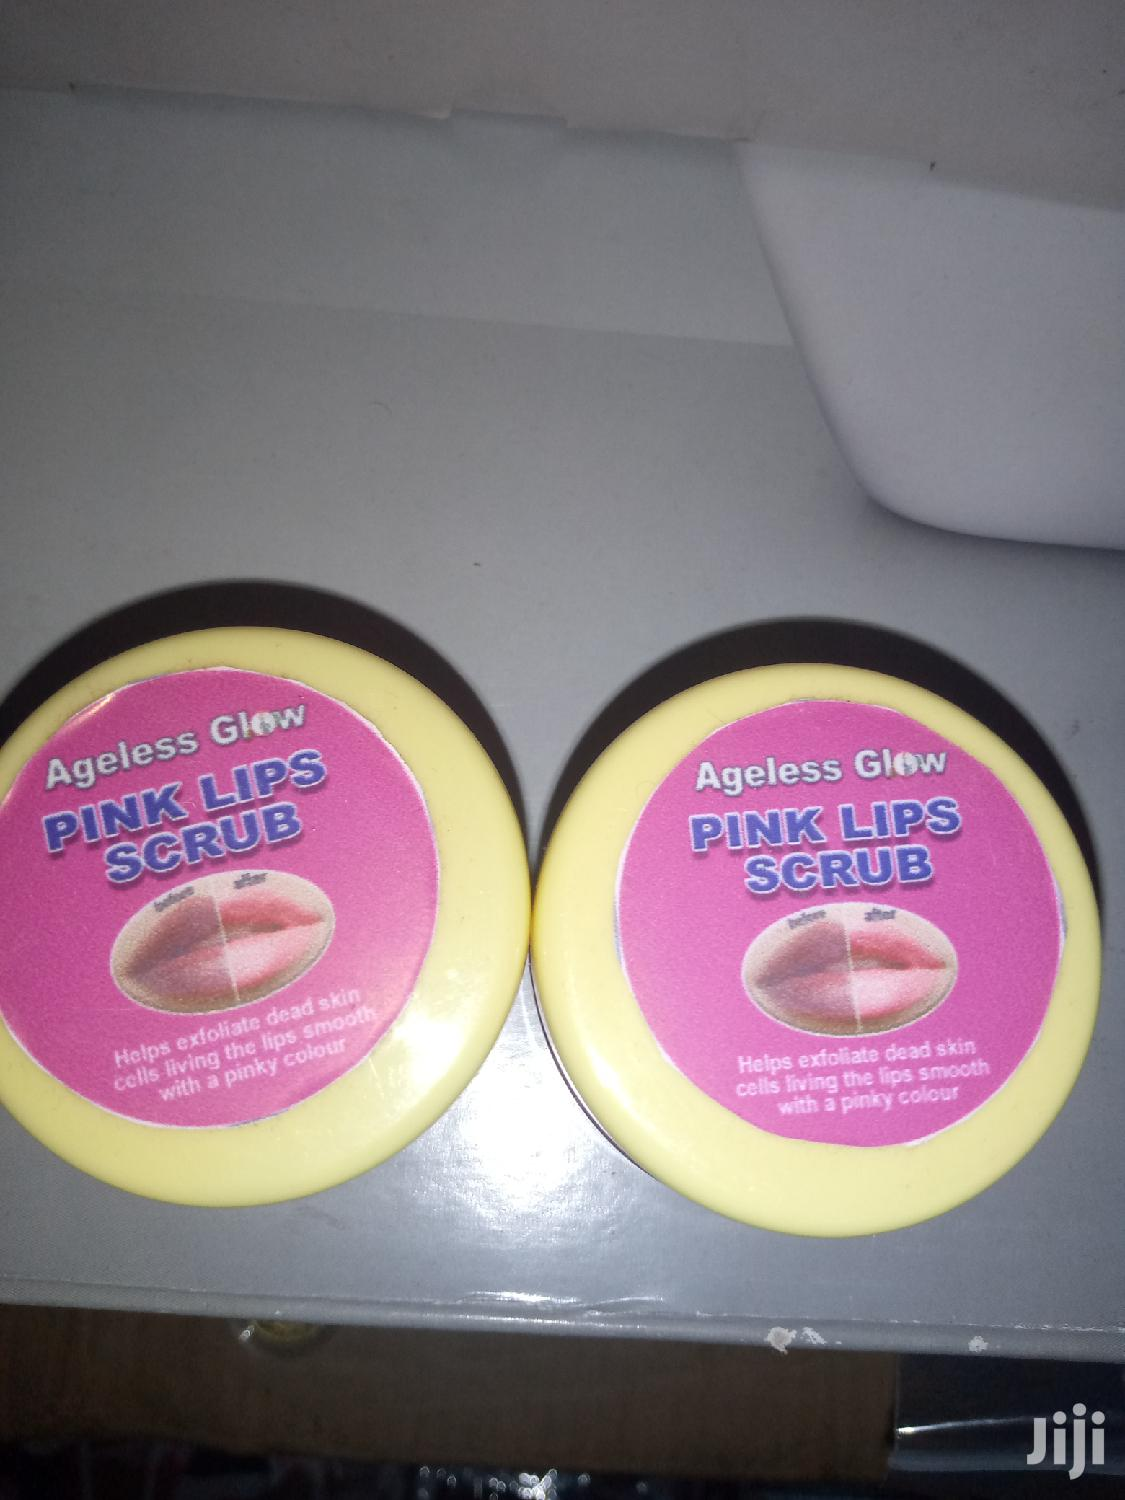 Archive: Pink Lip Scrub - For Pink Lips